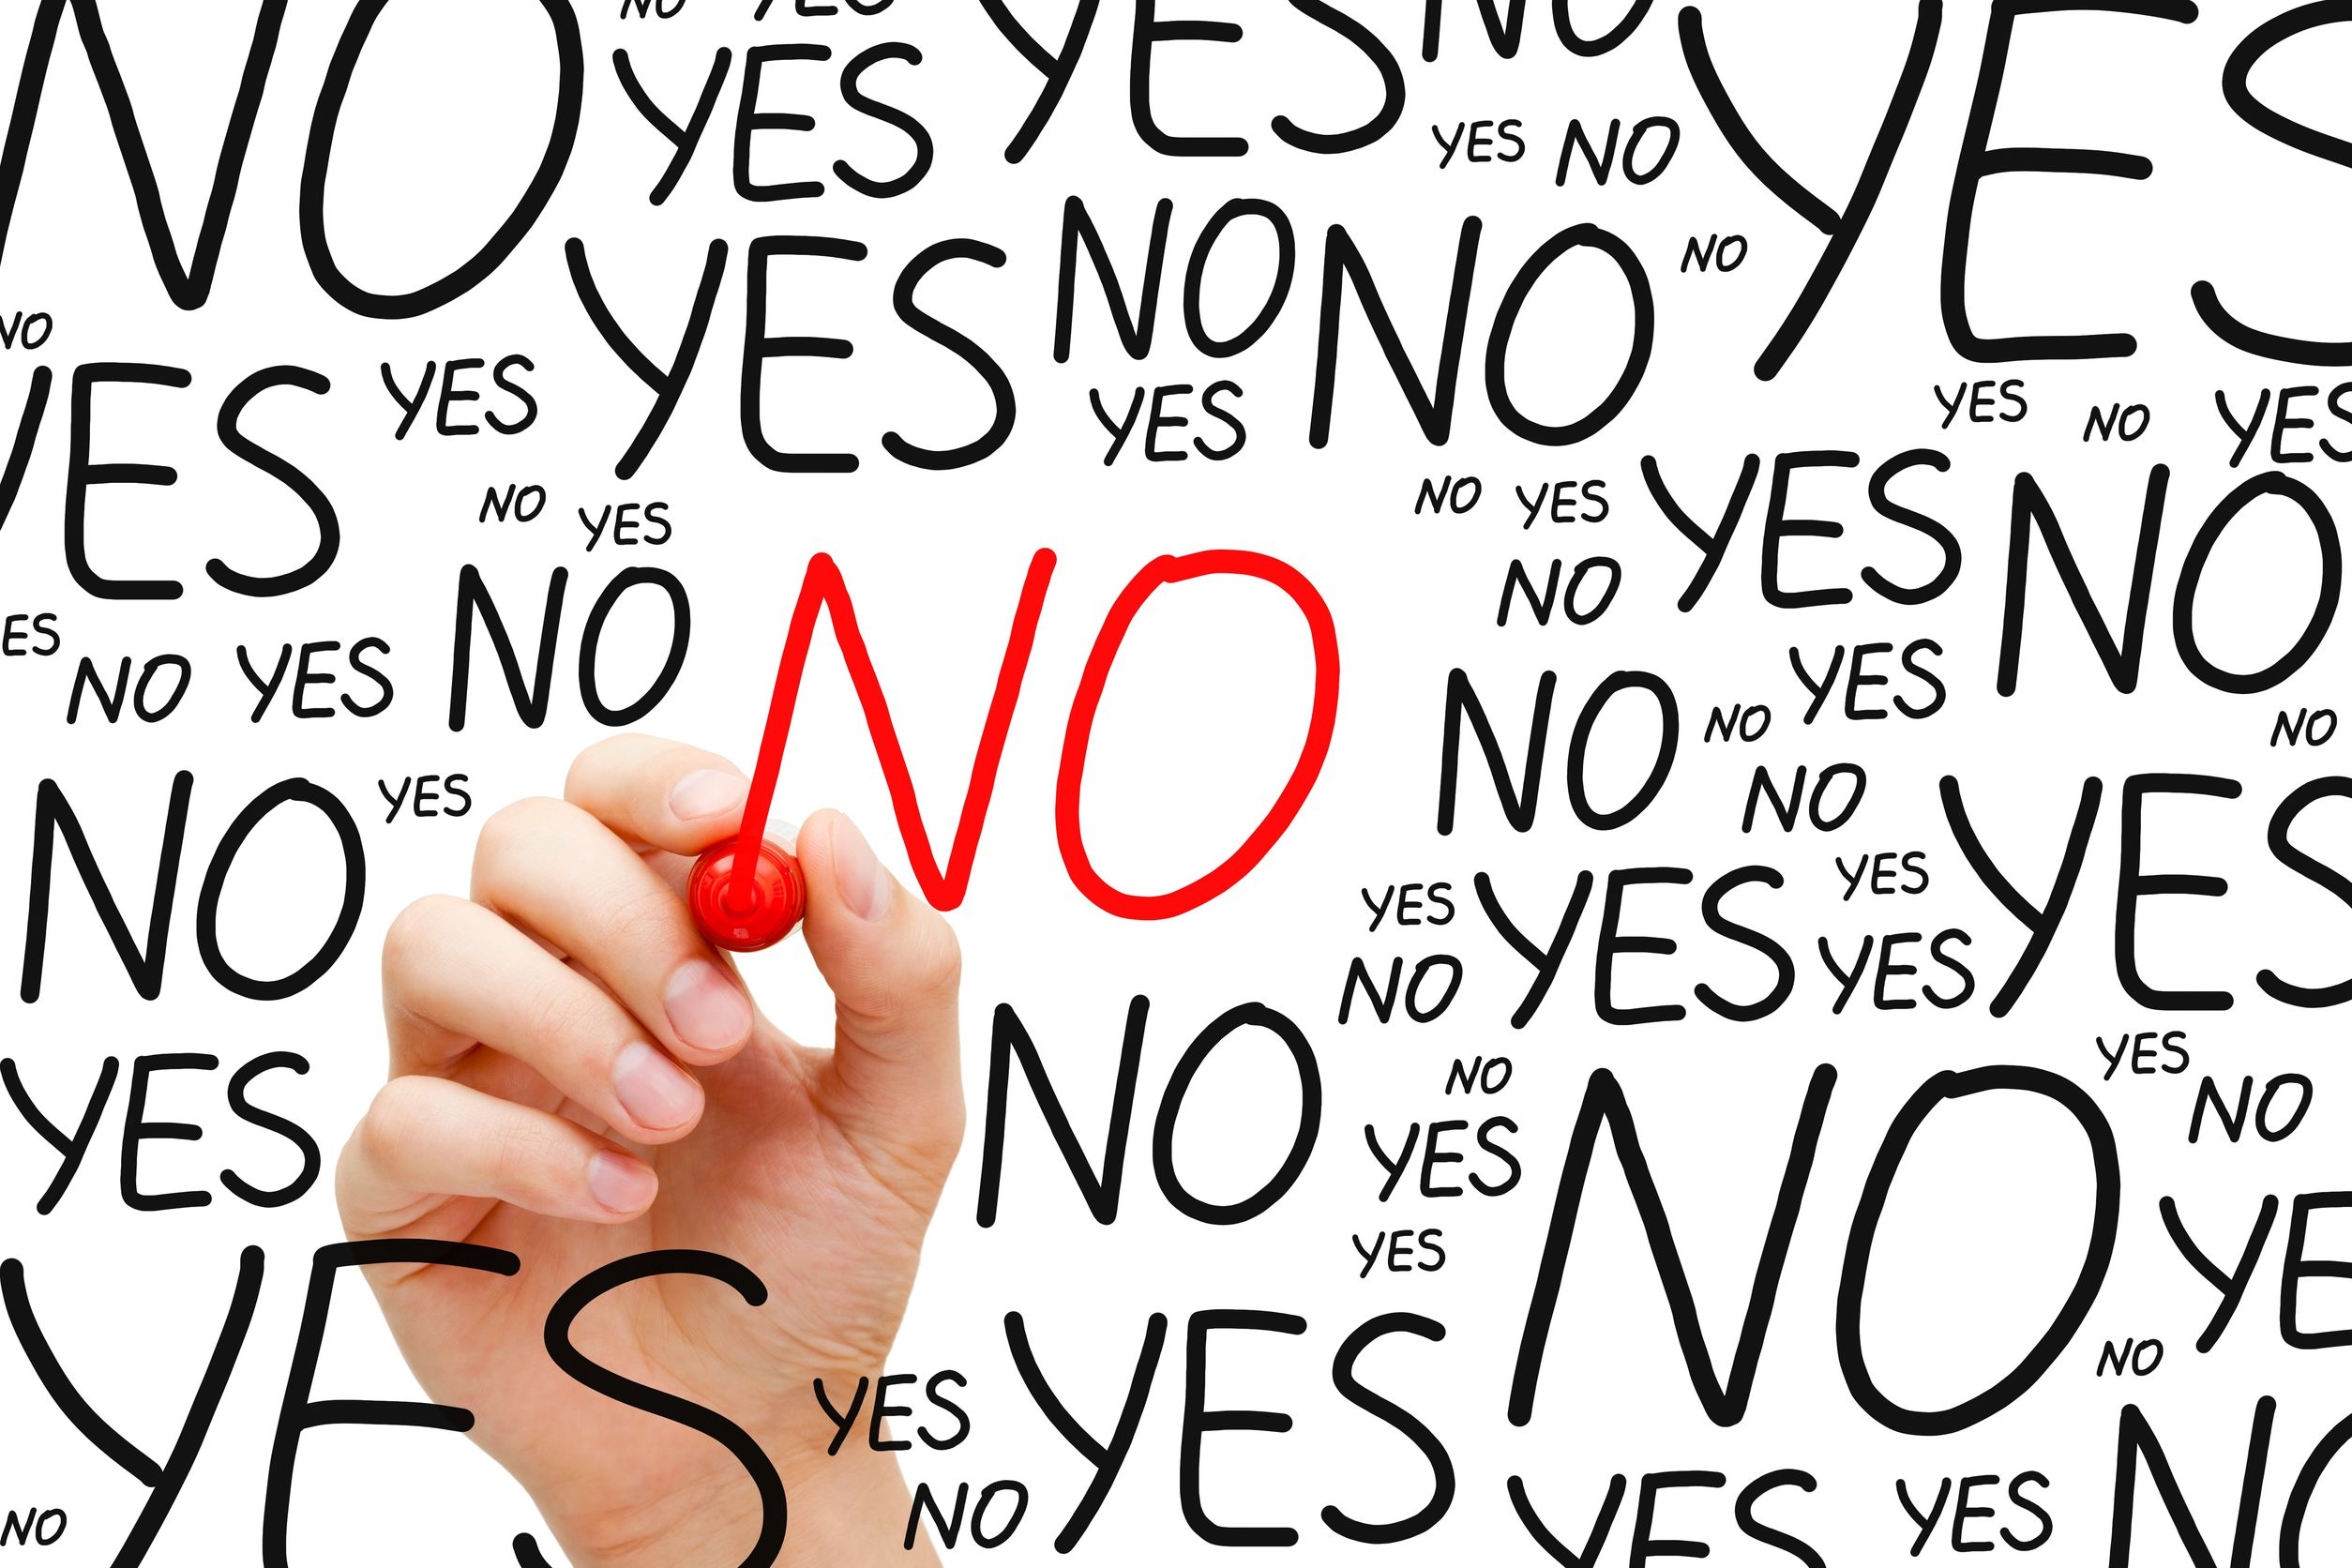 It's ok to say no sometimes, especially when it might help you stress less.